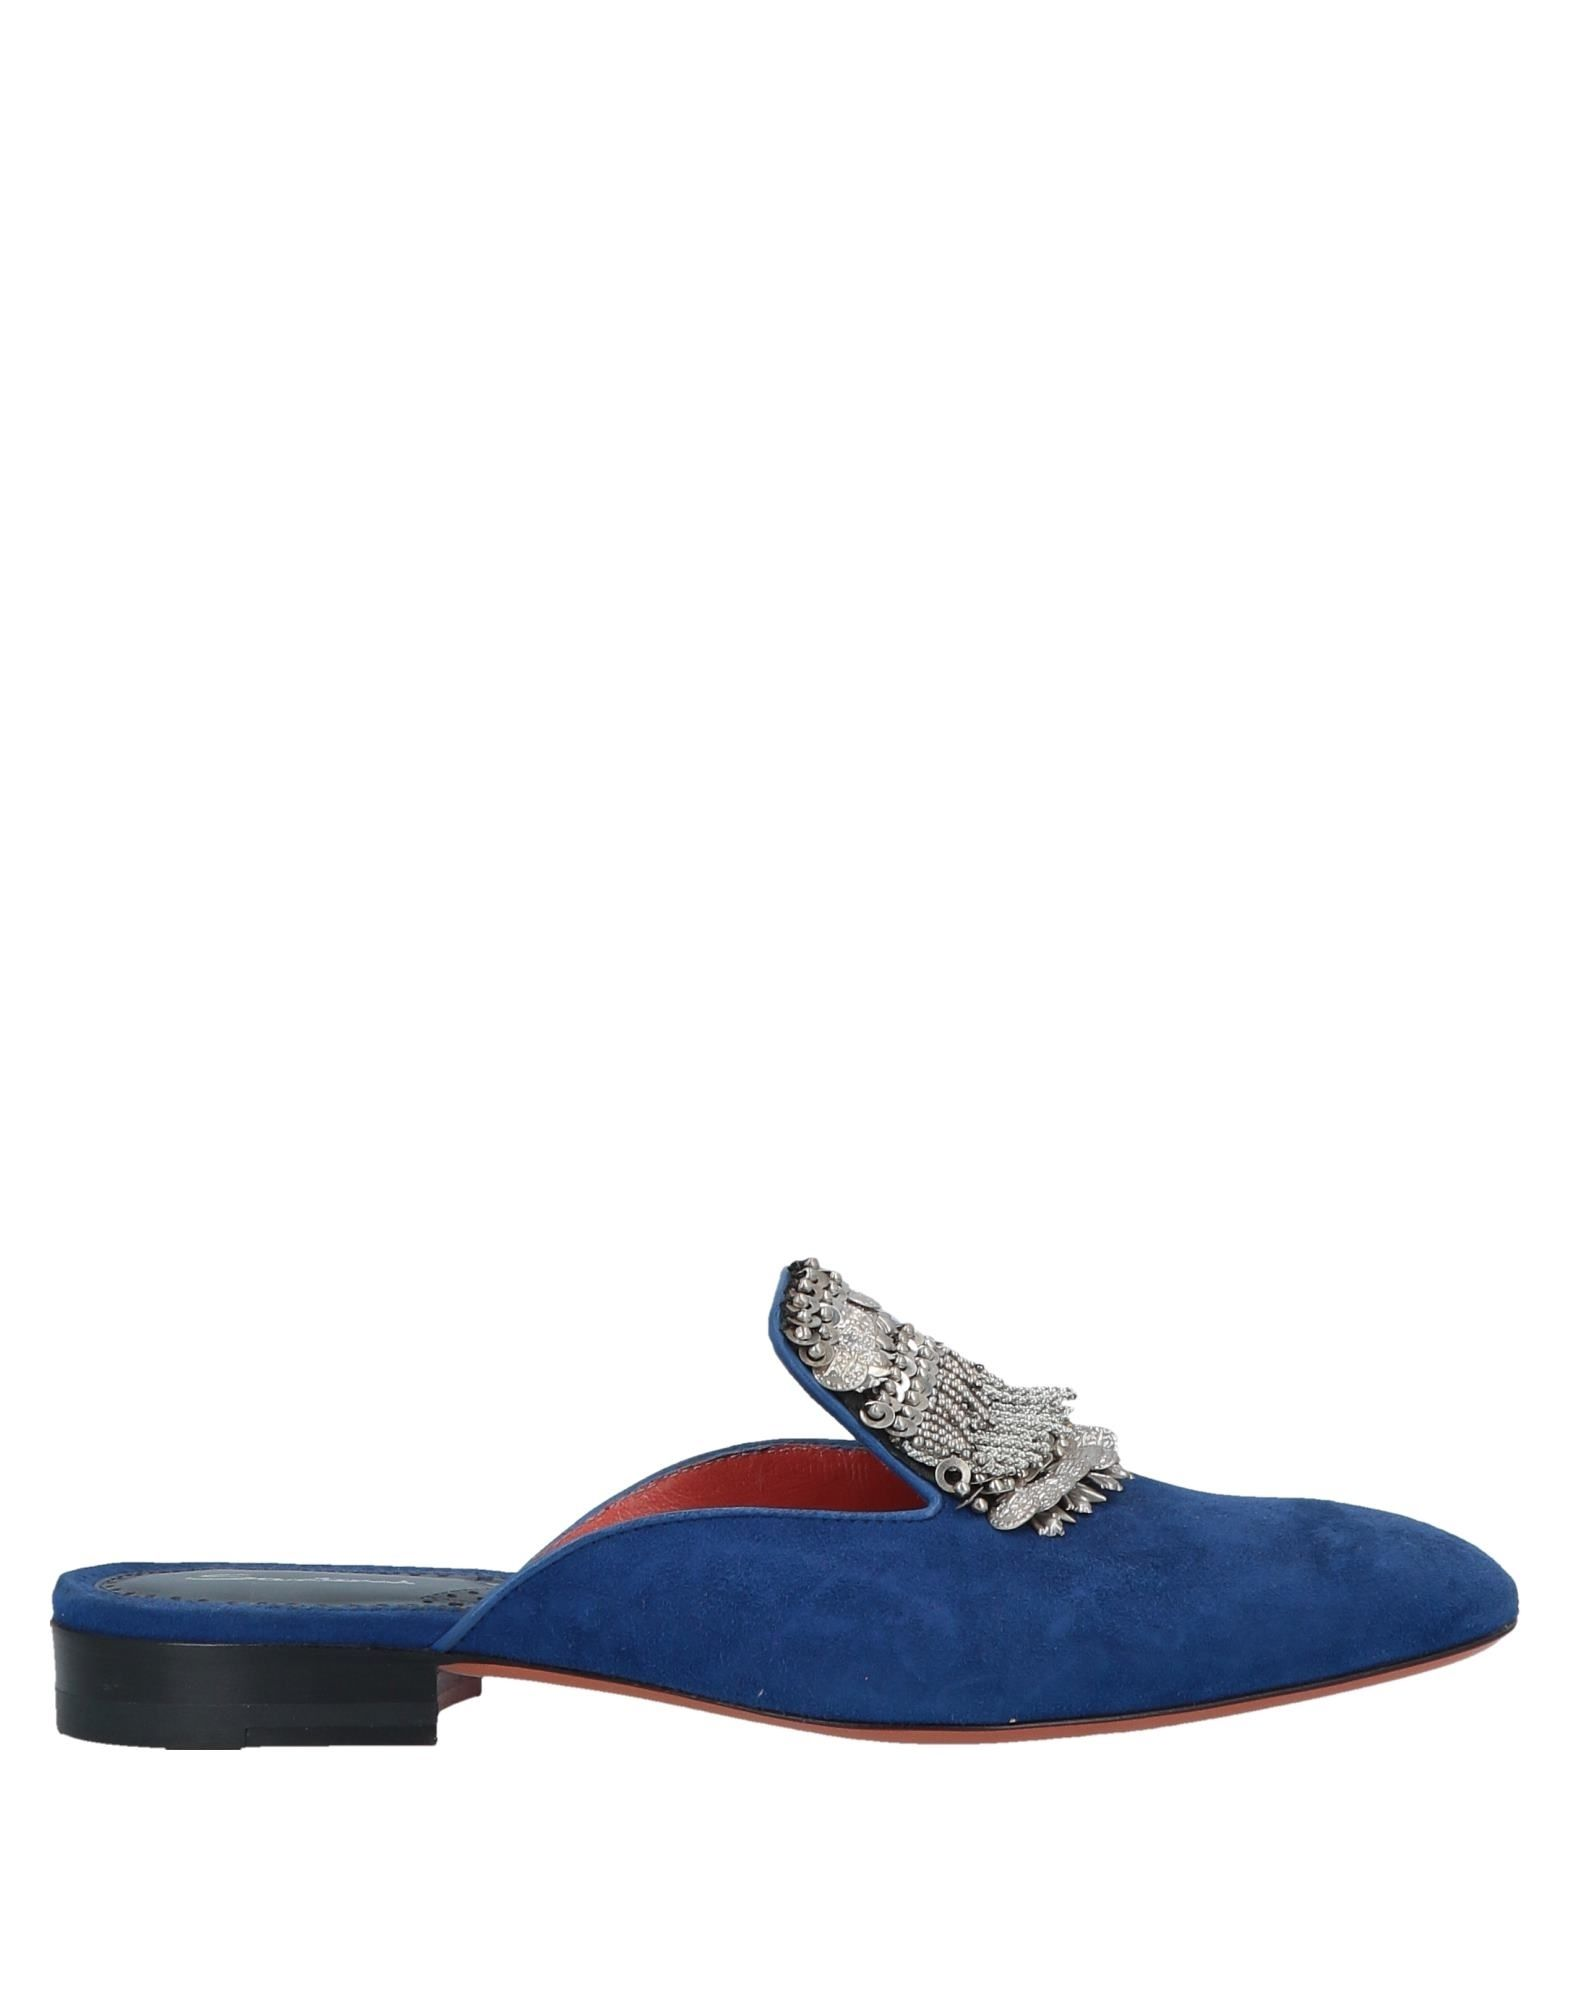 SANTONI Mules. suede effect, sequins, metal applications, solid color, narrow toeline, square heel, leather lining, leather sole, contains non-textile parts of animal origin, mules, large sized. Soft Leather